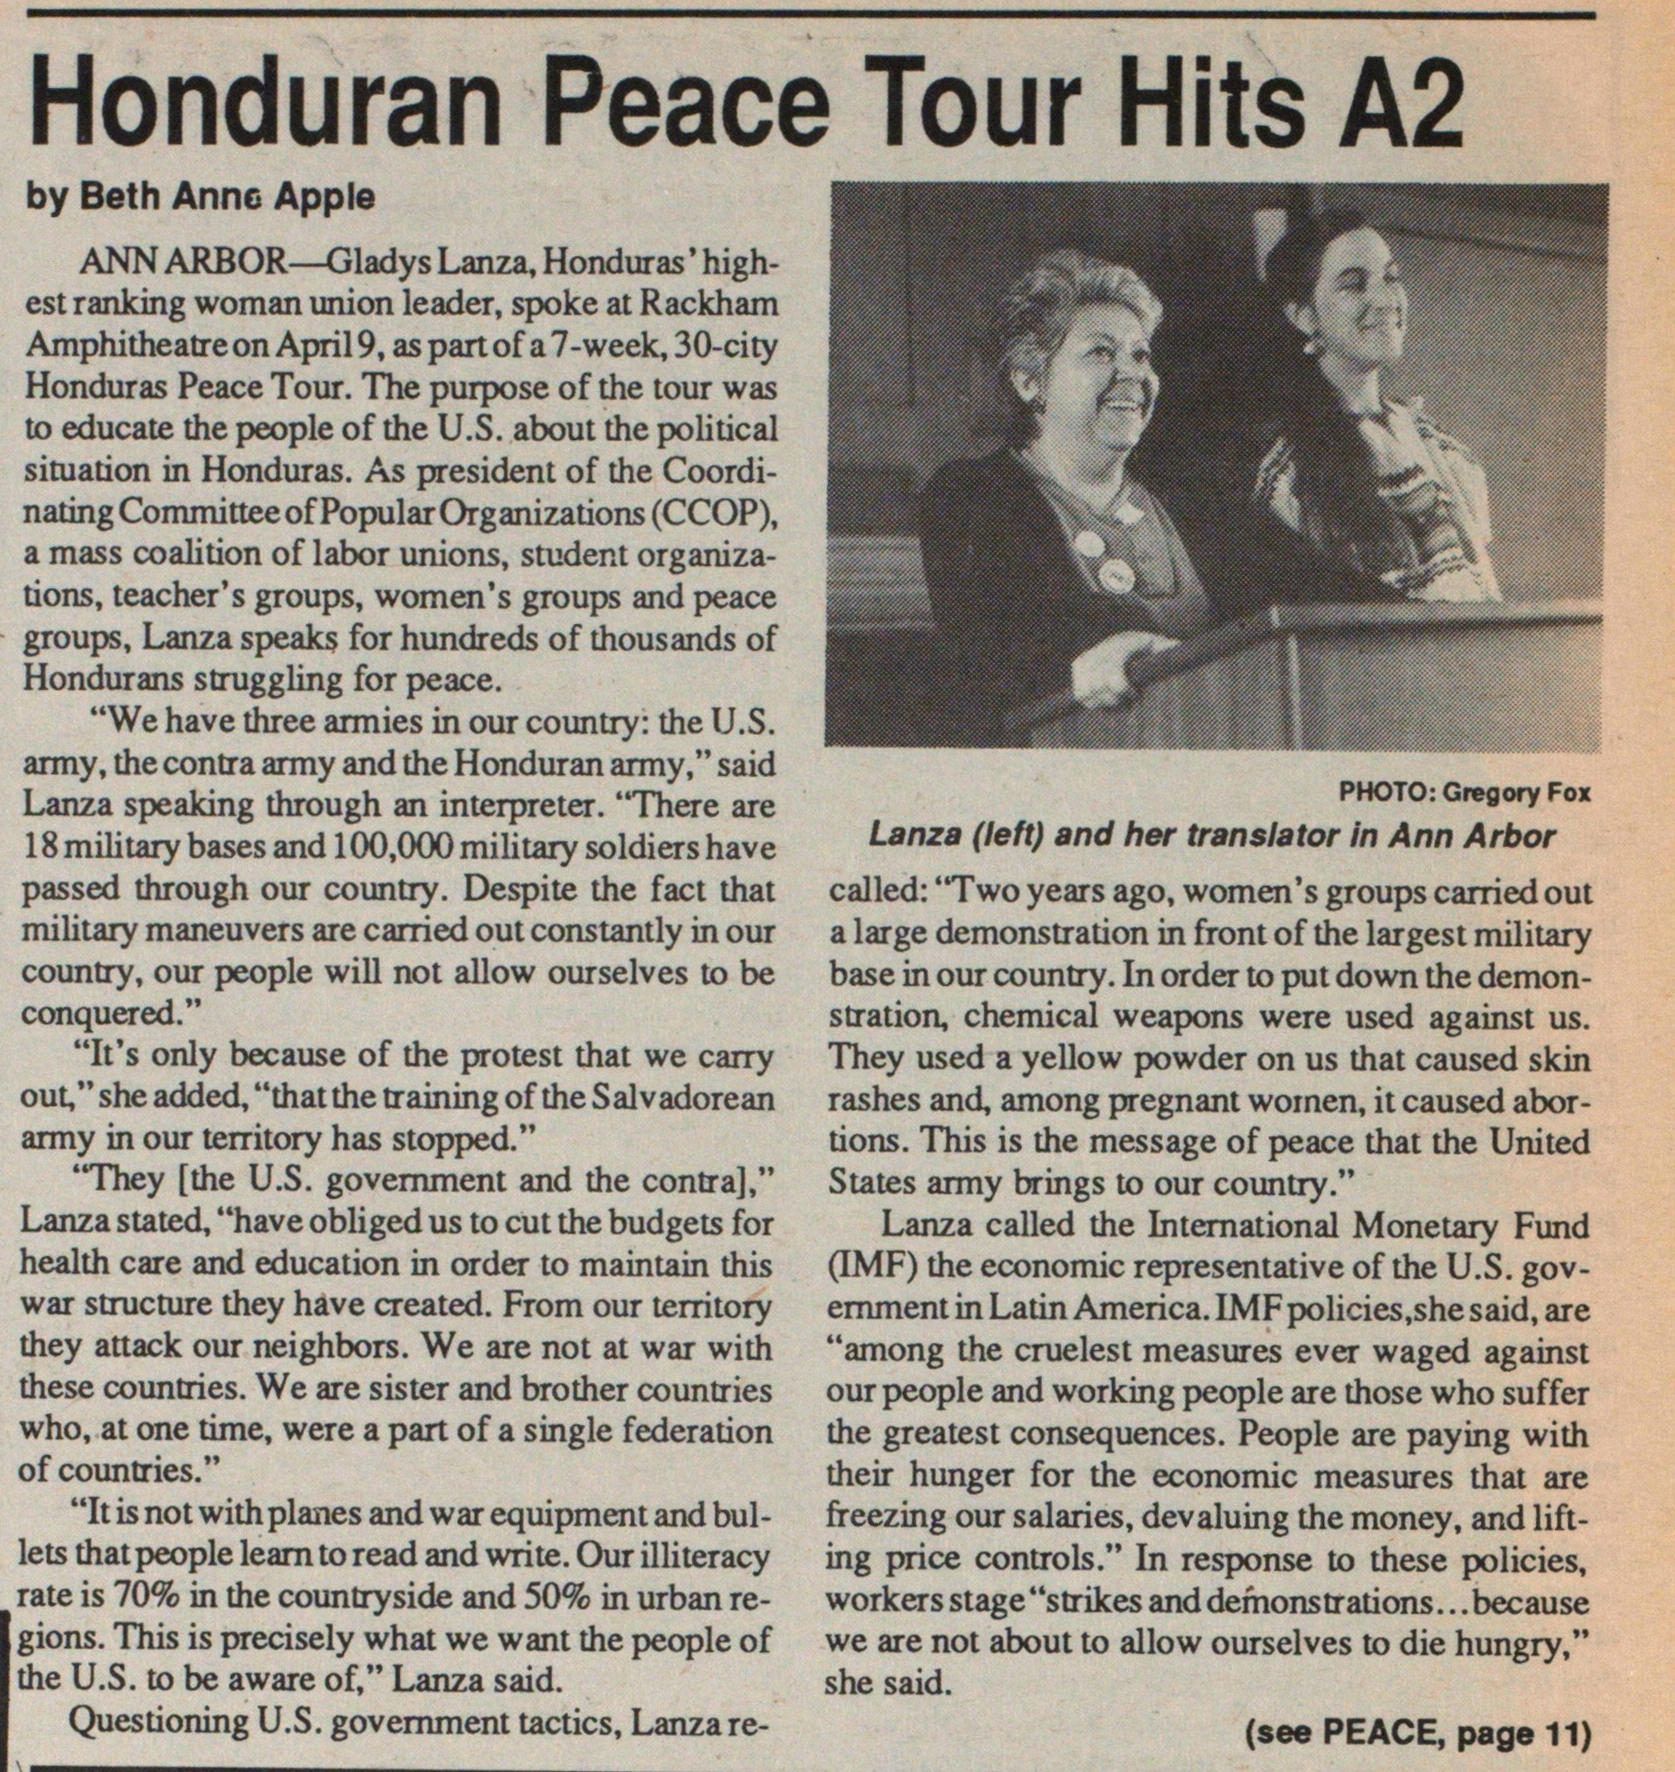 Honduran Peace Tour Hits A2 image